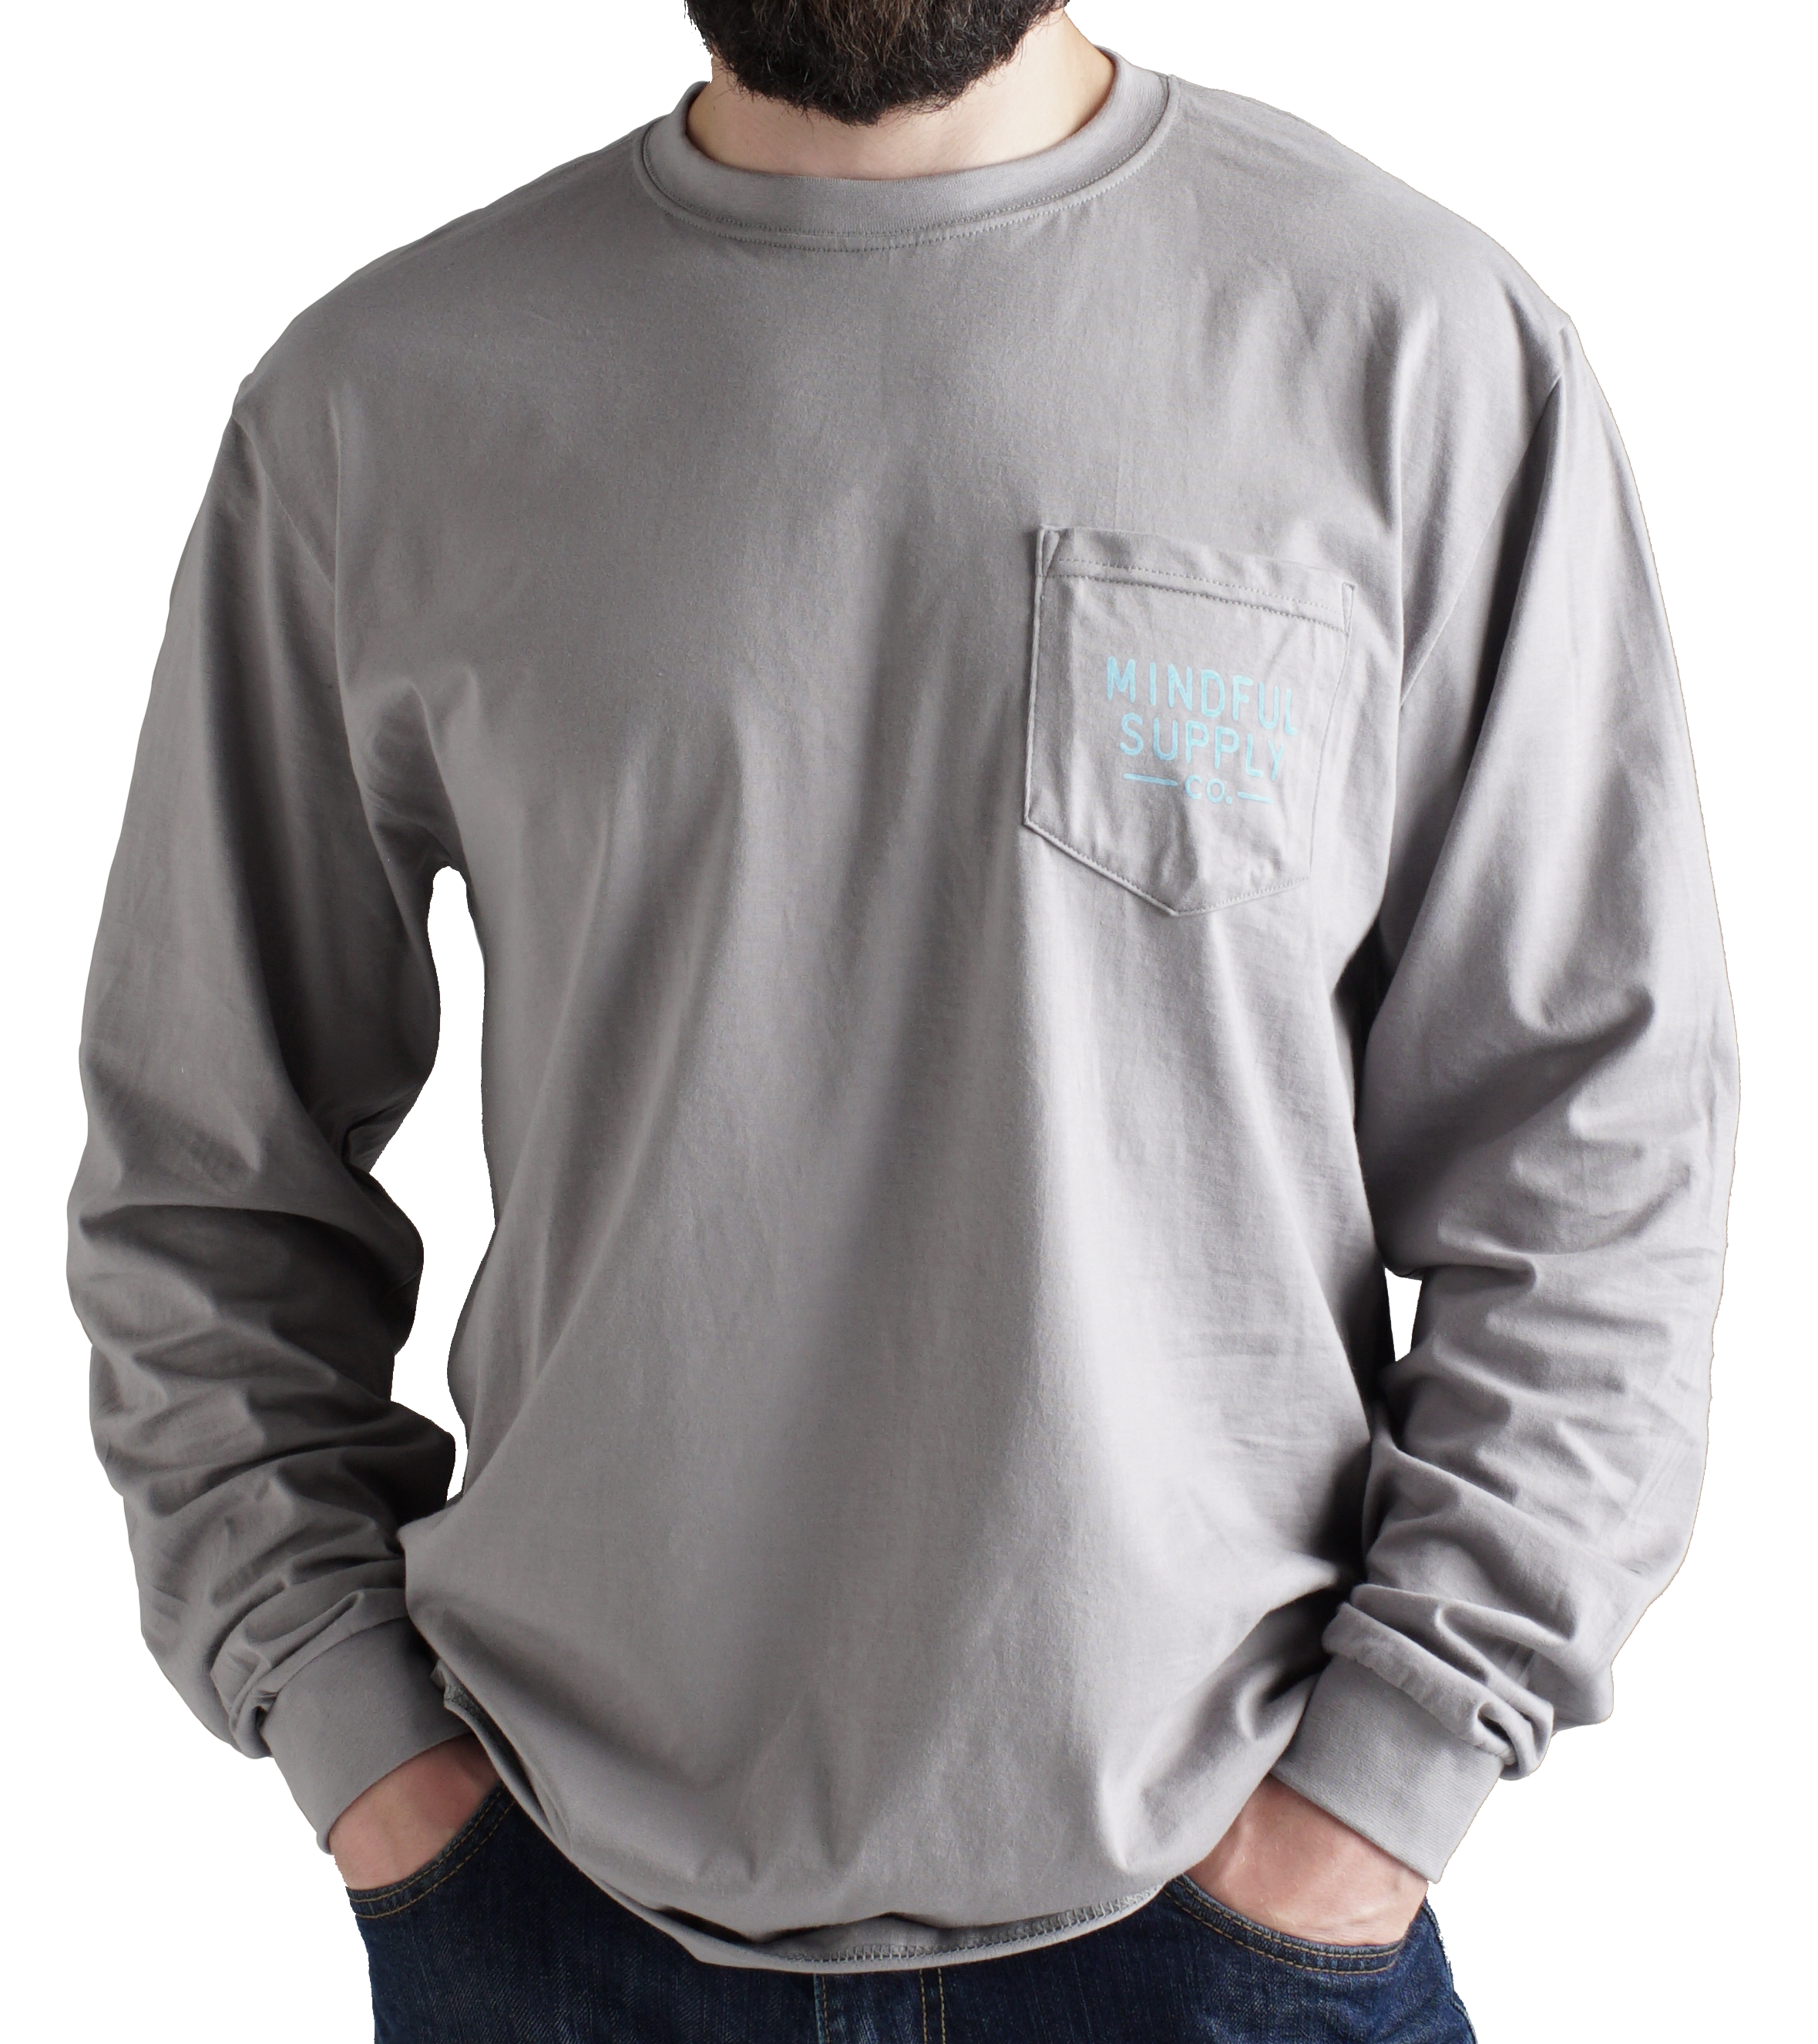 Free As A Bird Unisex Longsleeve Pocket